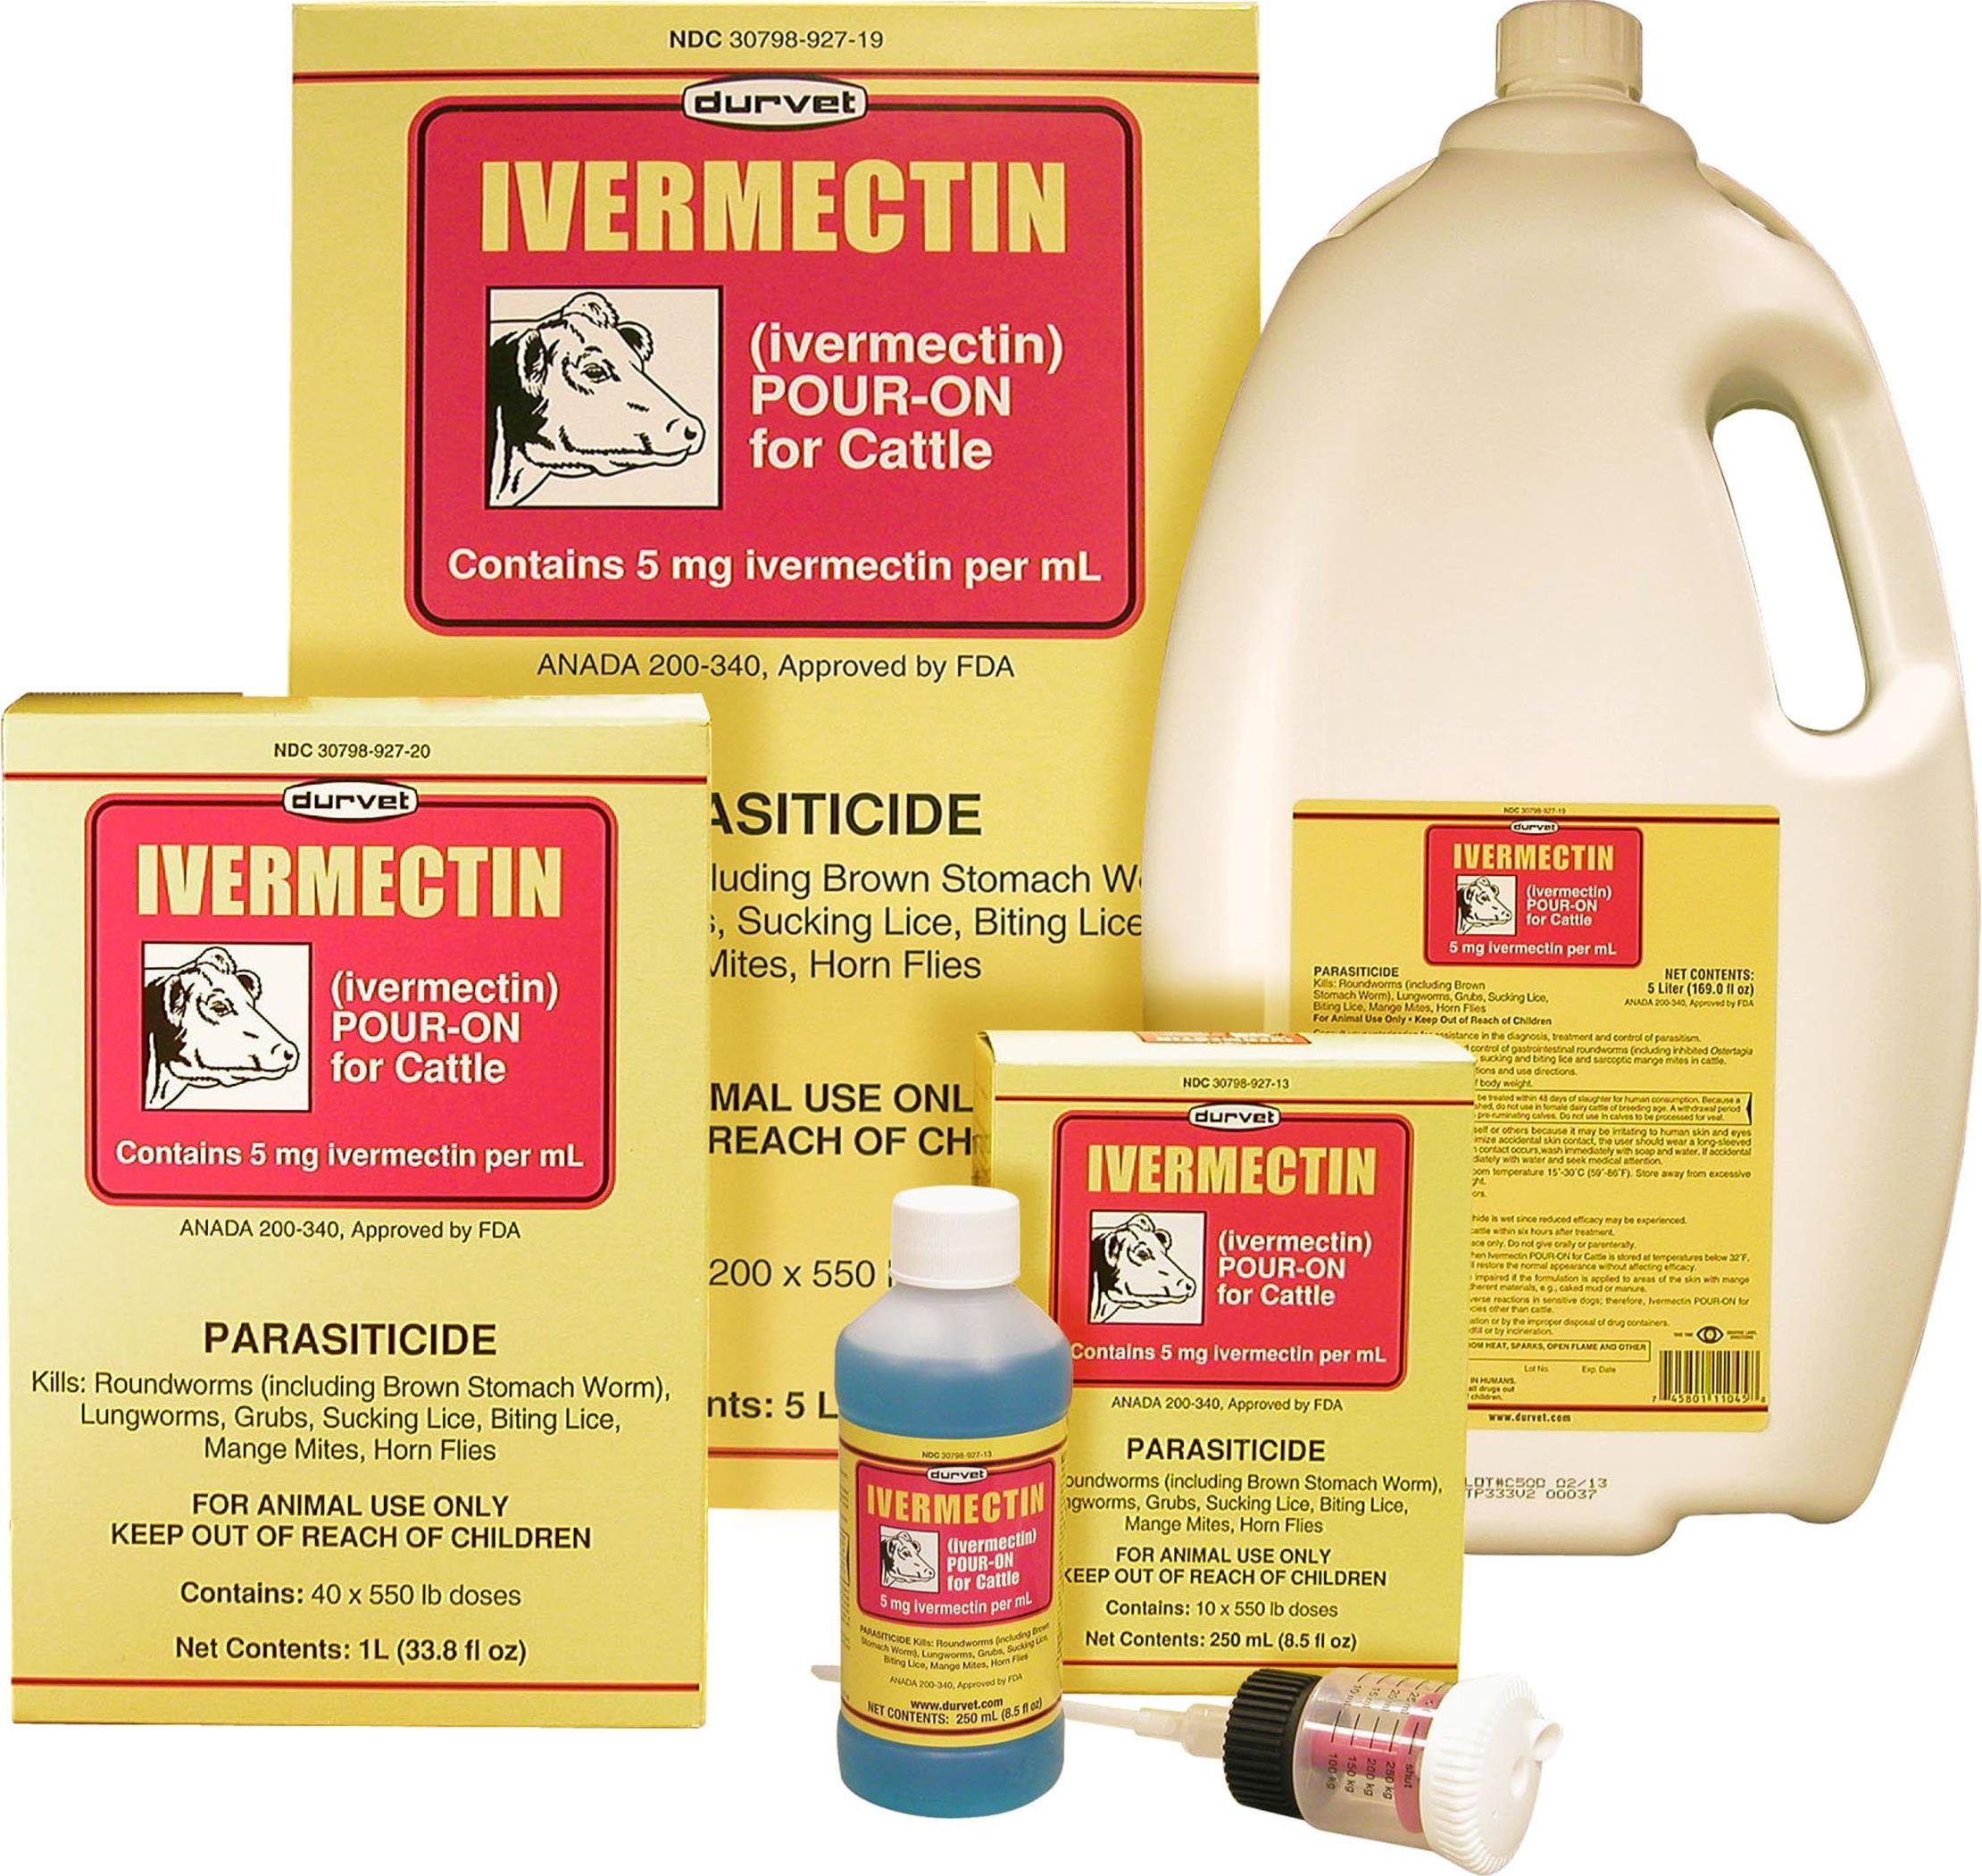 IVERMECTIN POUR ON FOR CATTLE - 1 LITER